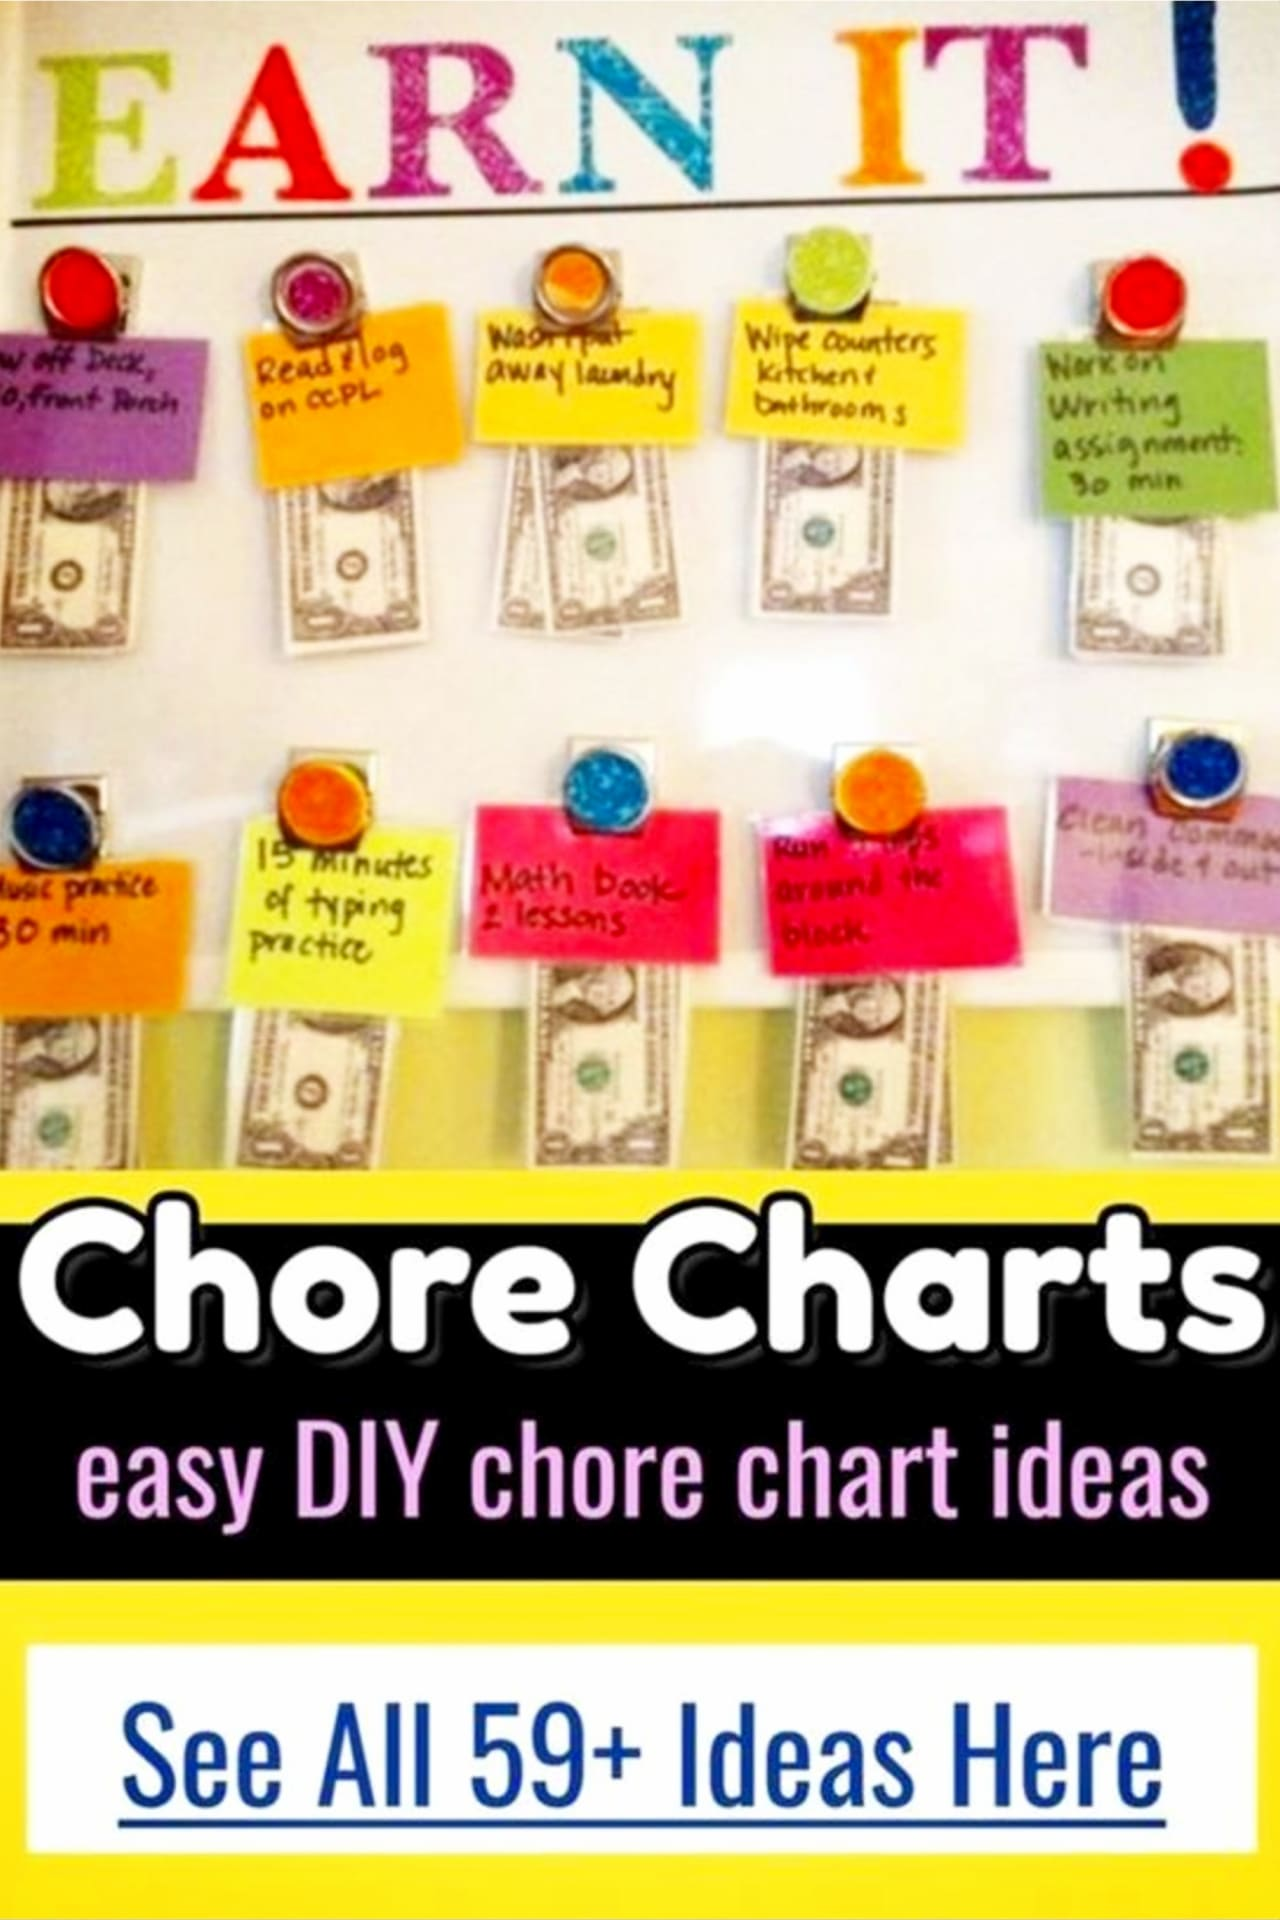 chores for kids by age - printable allowance chore chart ideas - rewards for doing chores around the house ( organized mom hack!)